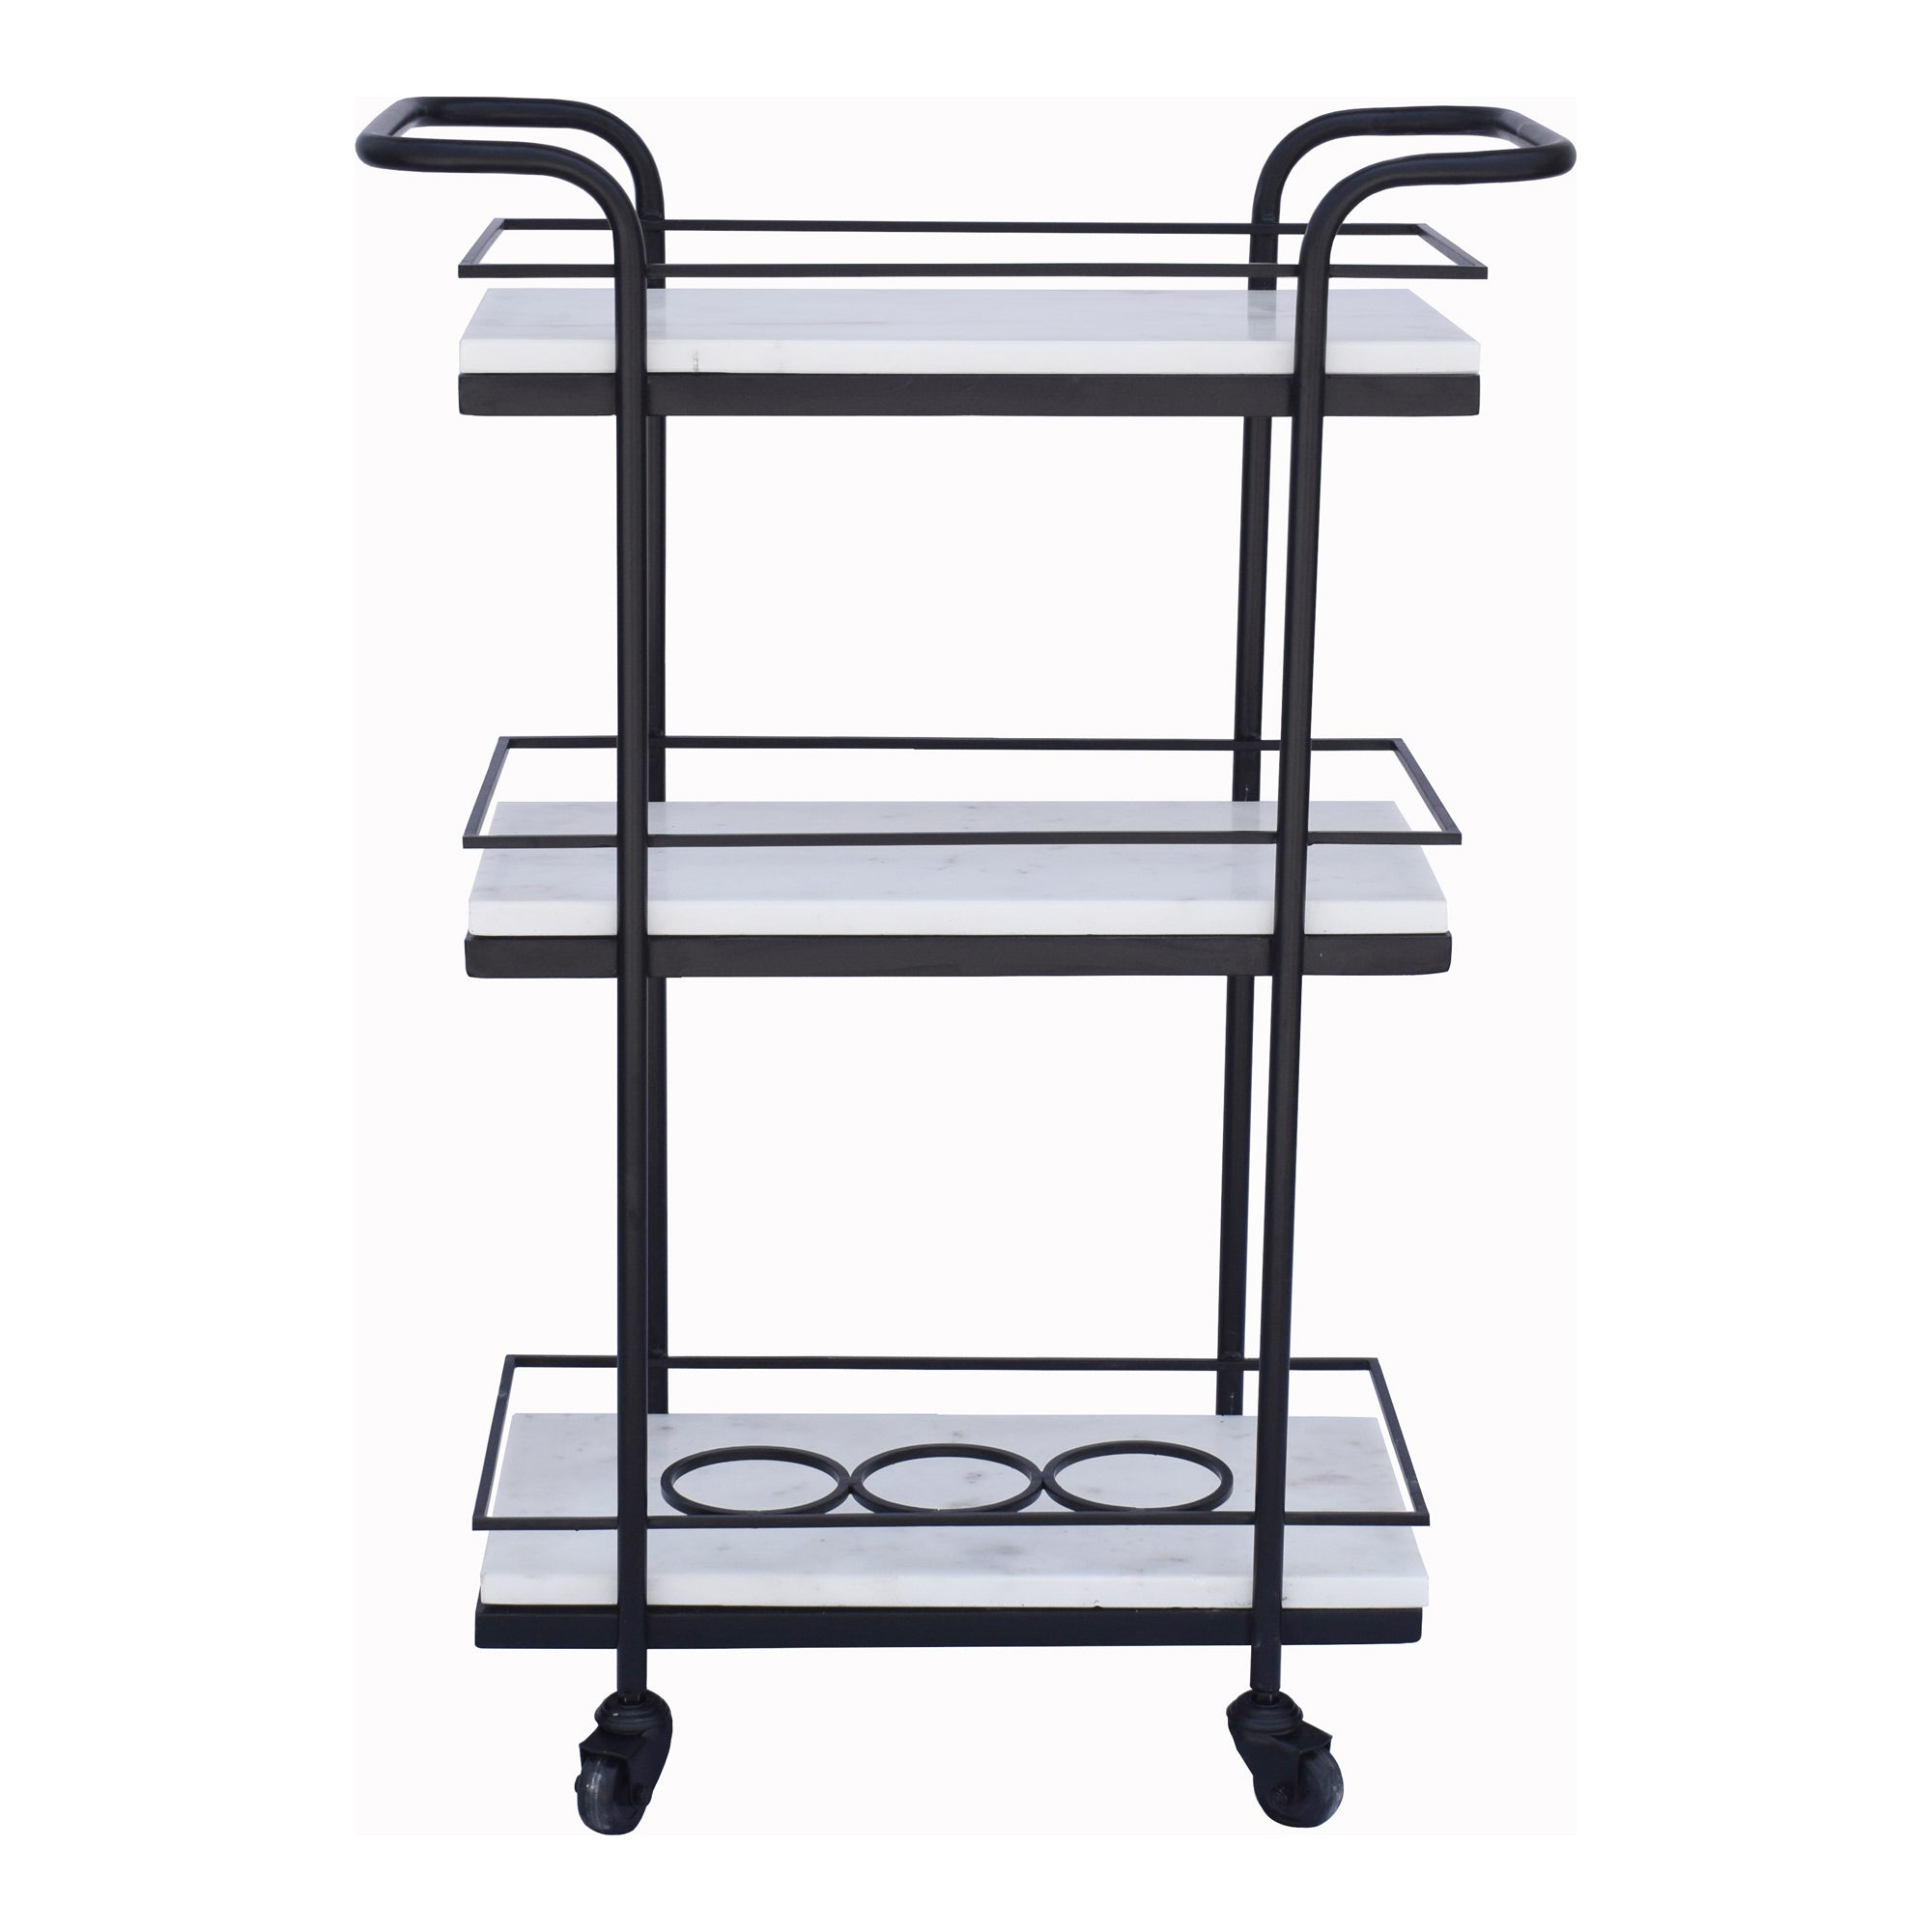 Banswara marble bar cart, white - Tops-Dress